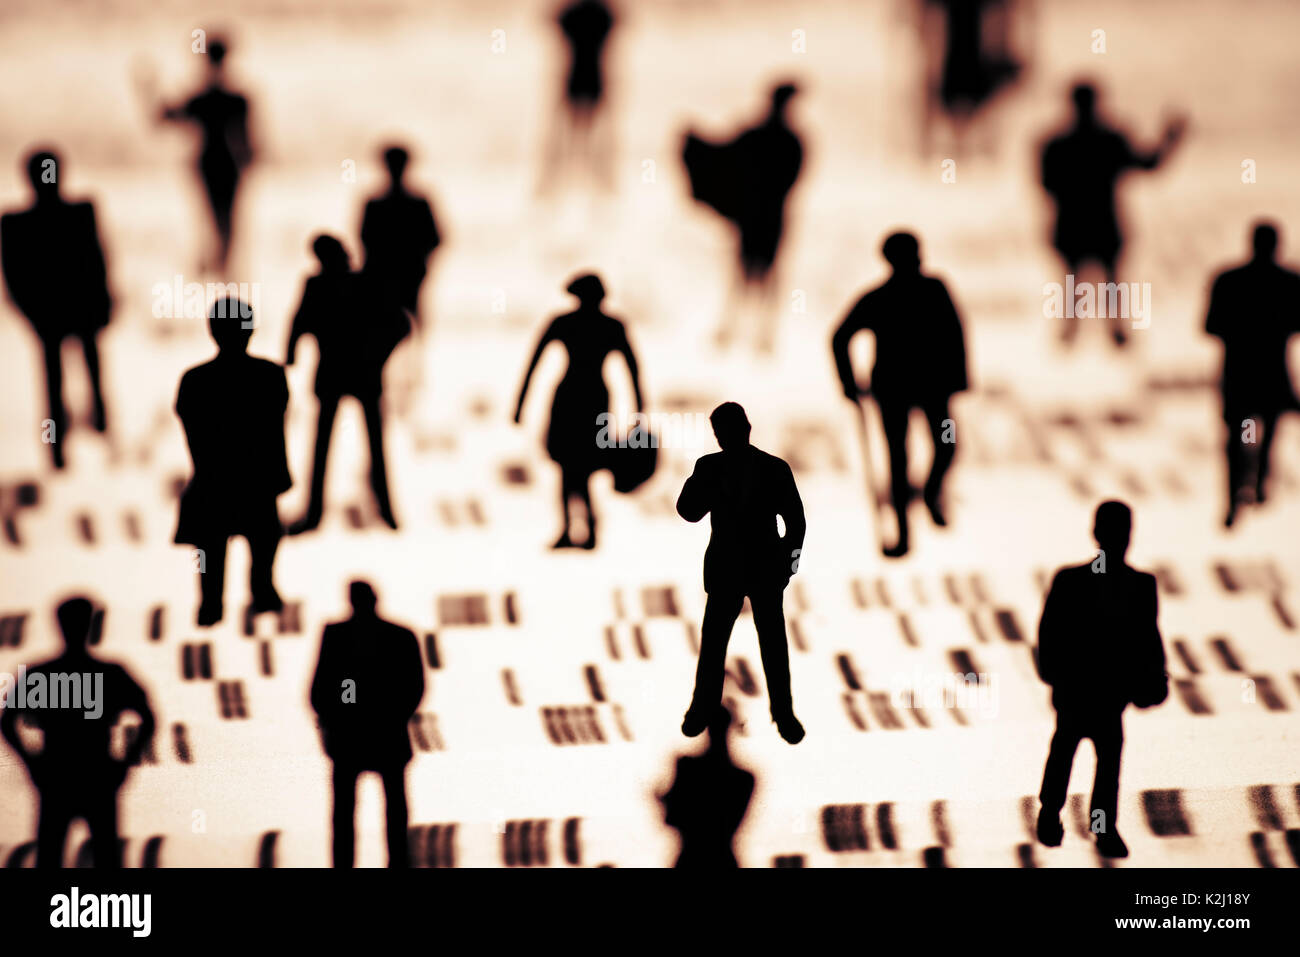 A group of people on a DNA profile - Stock Image